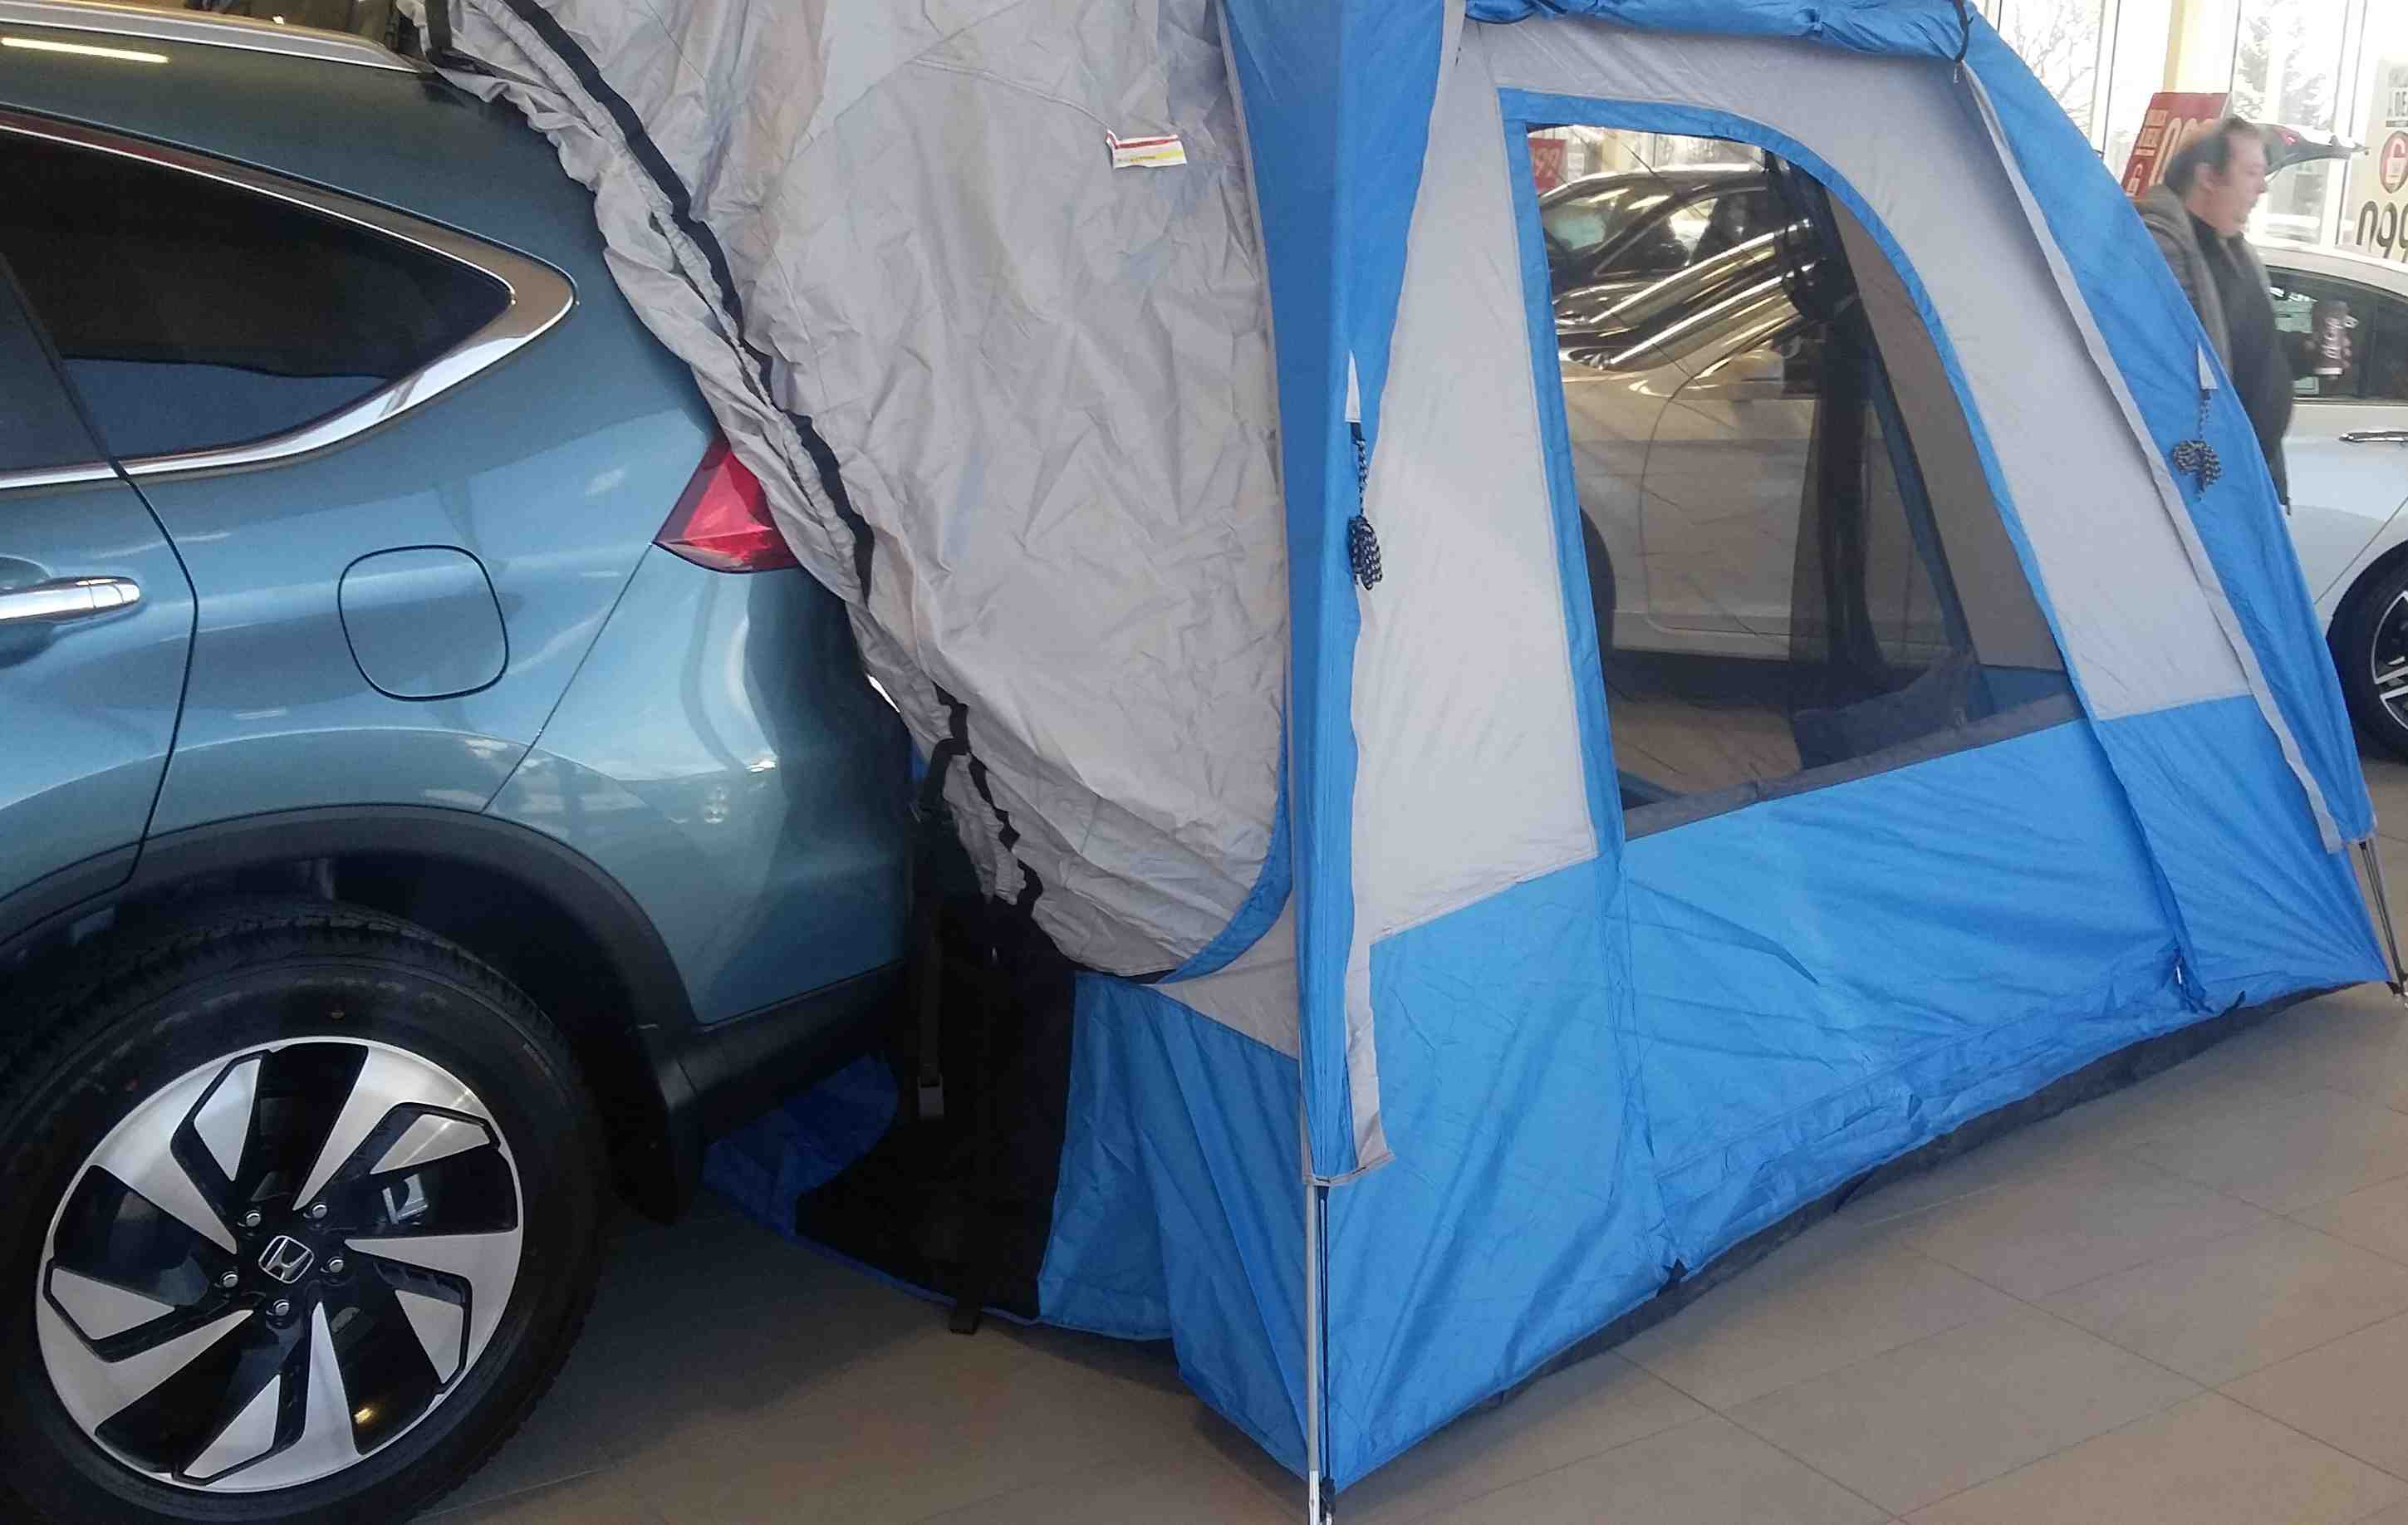 On its own the 2016 CR-V is already road trip ready. Its ECON button and Earth Dreams engine with CVT keeps fuel costs to a minimum. & Showroom Showoff: Tent Edition - Dow Honda